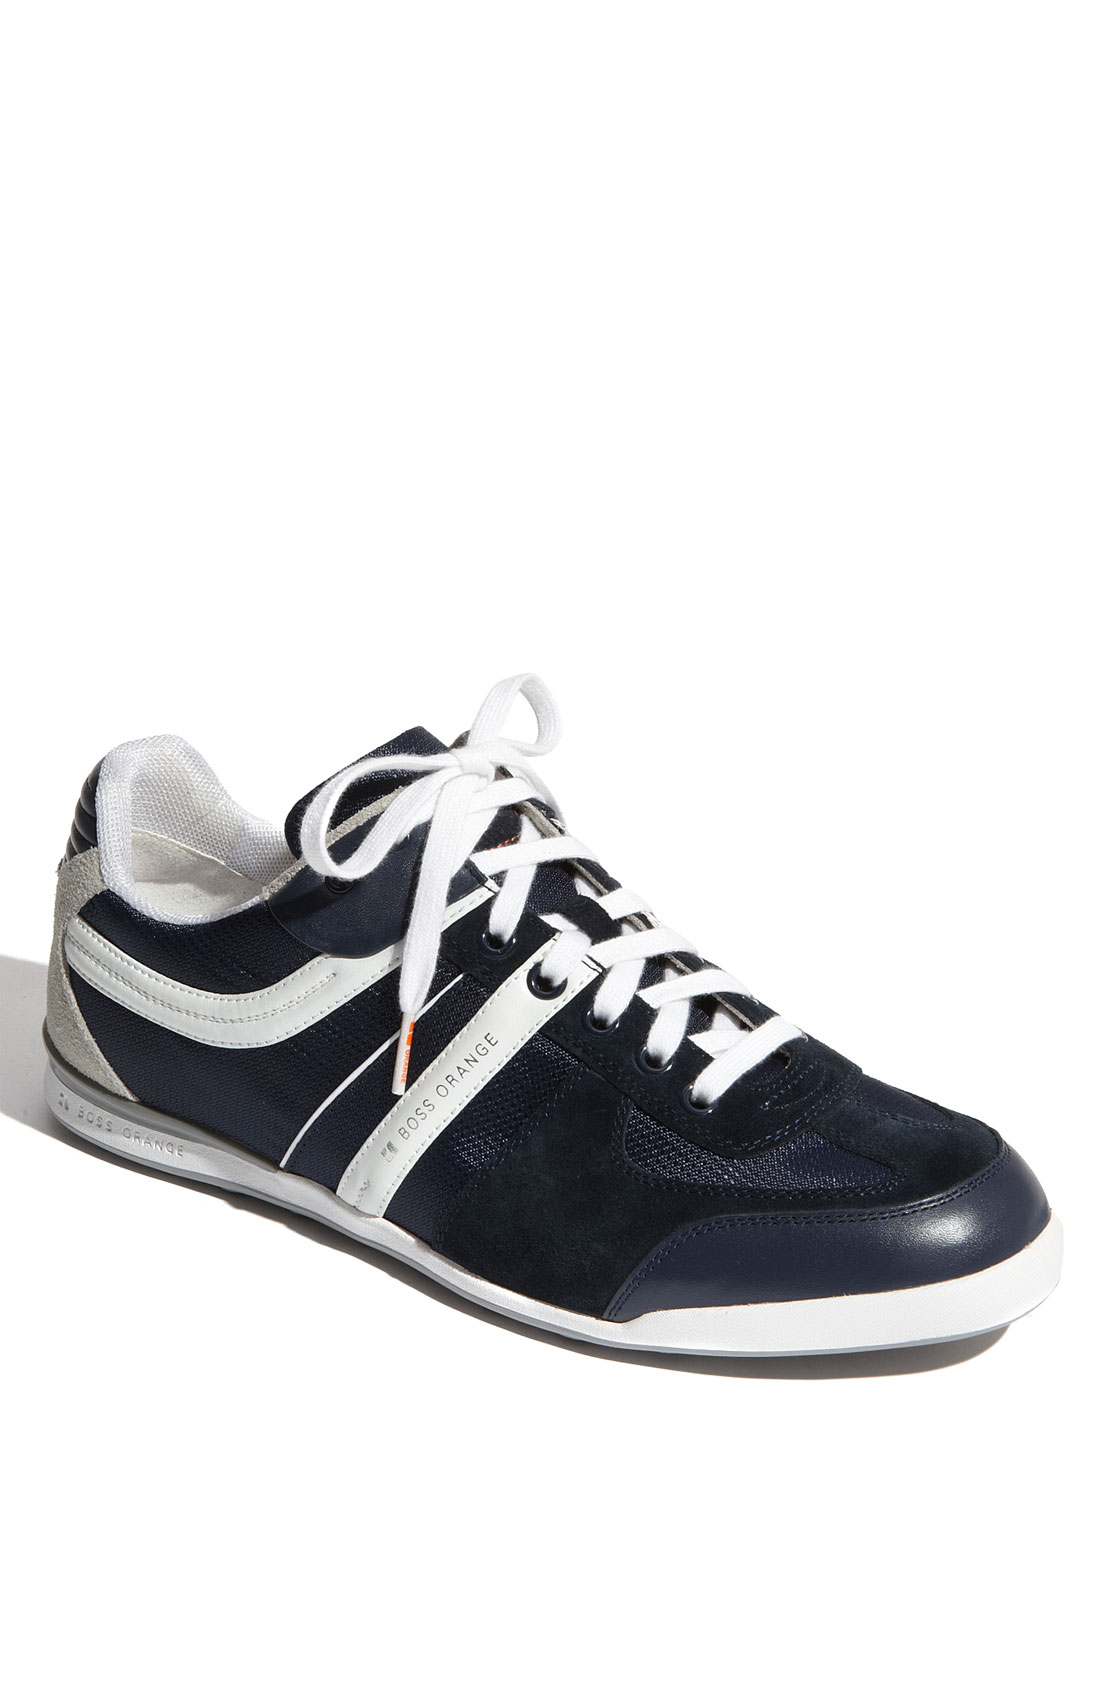 hugo boss boss orange kempton sneaker in blue for men. Black Bedroom Furniture Sets. Home Design Ideas